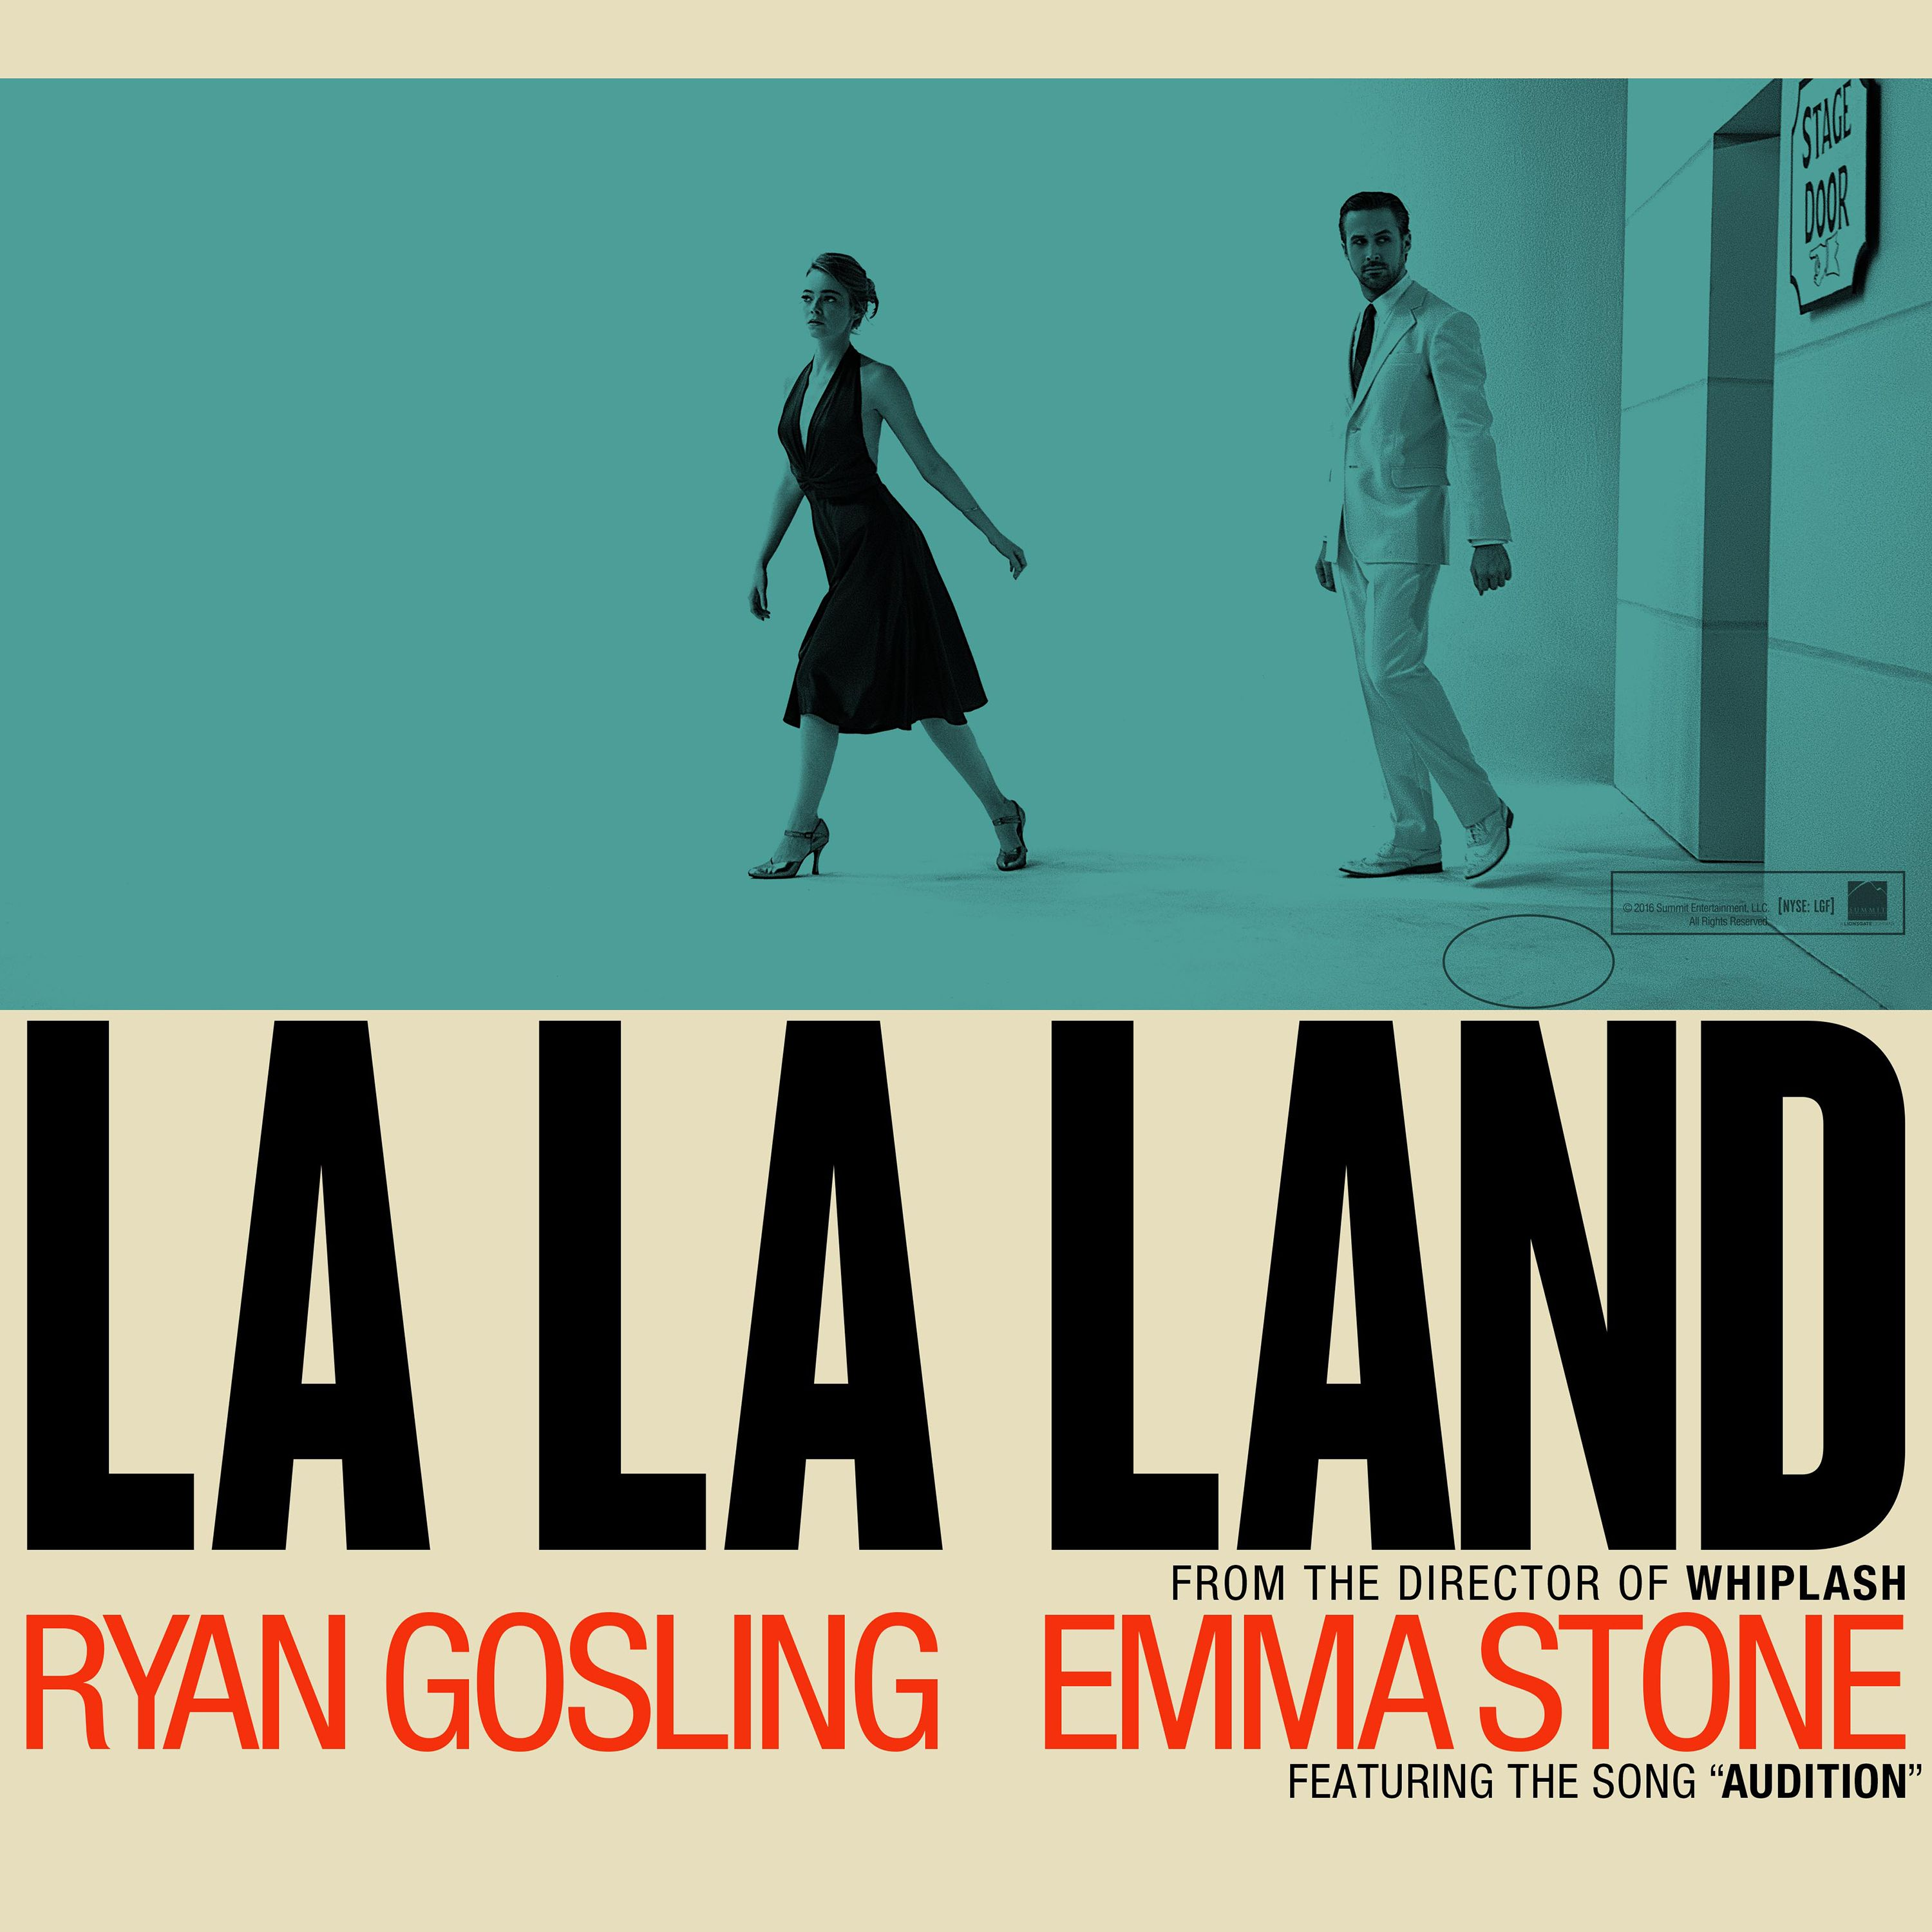 You heard City Of Stars featuring Ryan Gosling… Now listen to #Audition (The Fools Who Dream) featuring Emma Stone in the new #LALALAND teaser trailer: http://lions.gt/lalalandteaser2